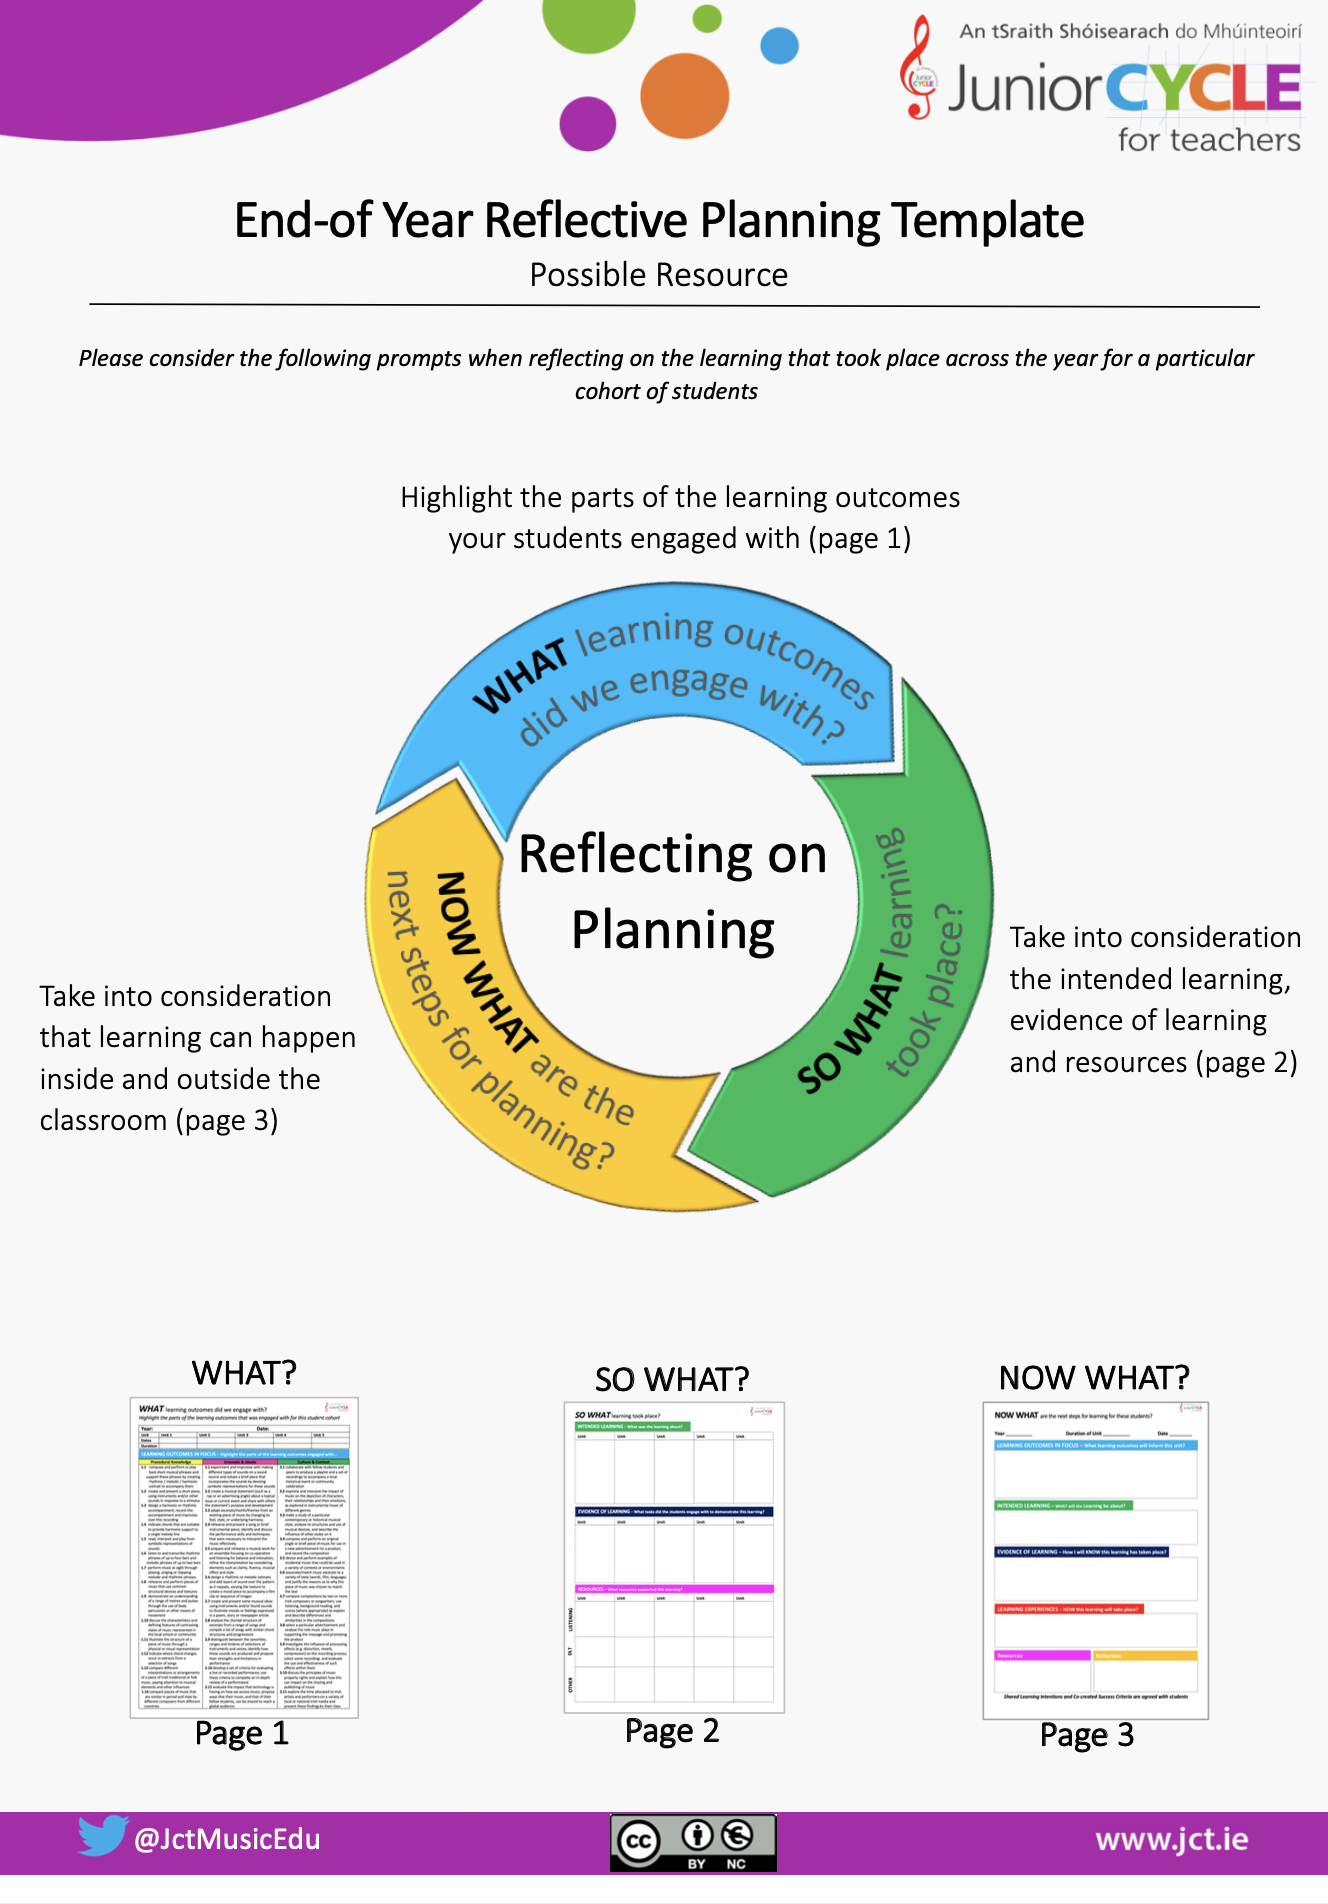 End-of-year Reflective Planning EDITABLE Template for Junior Cycle Music